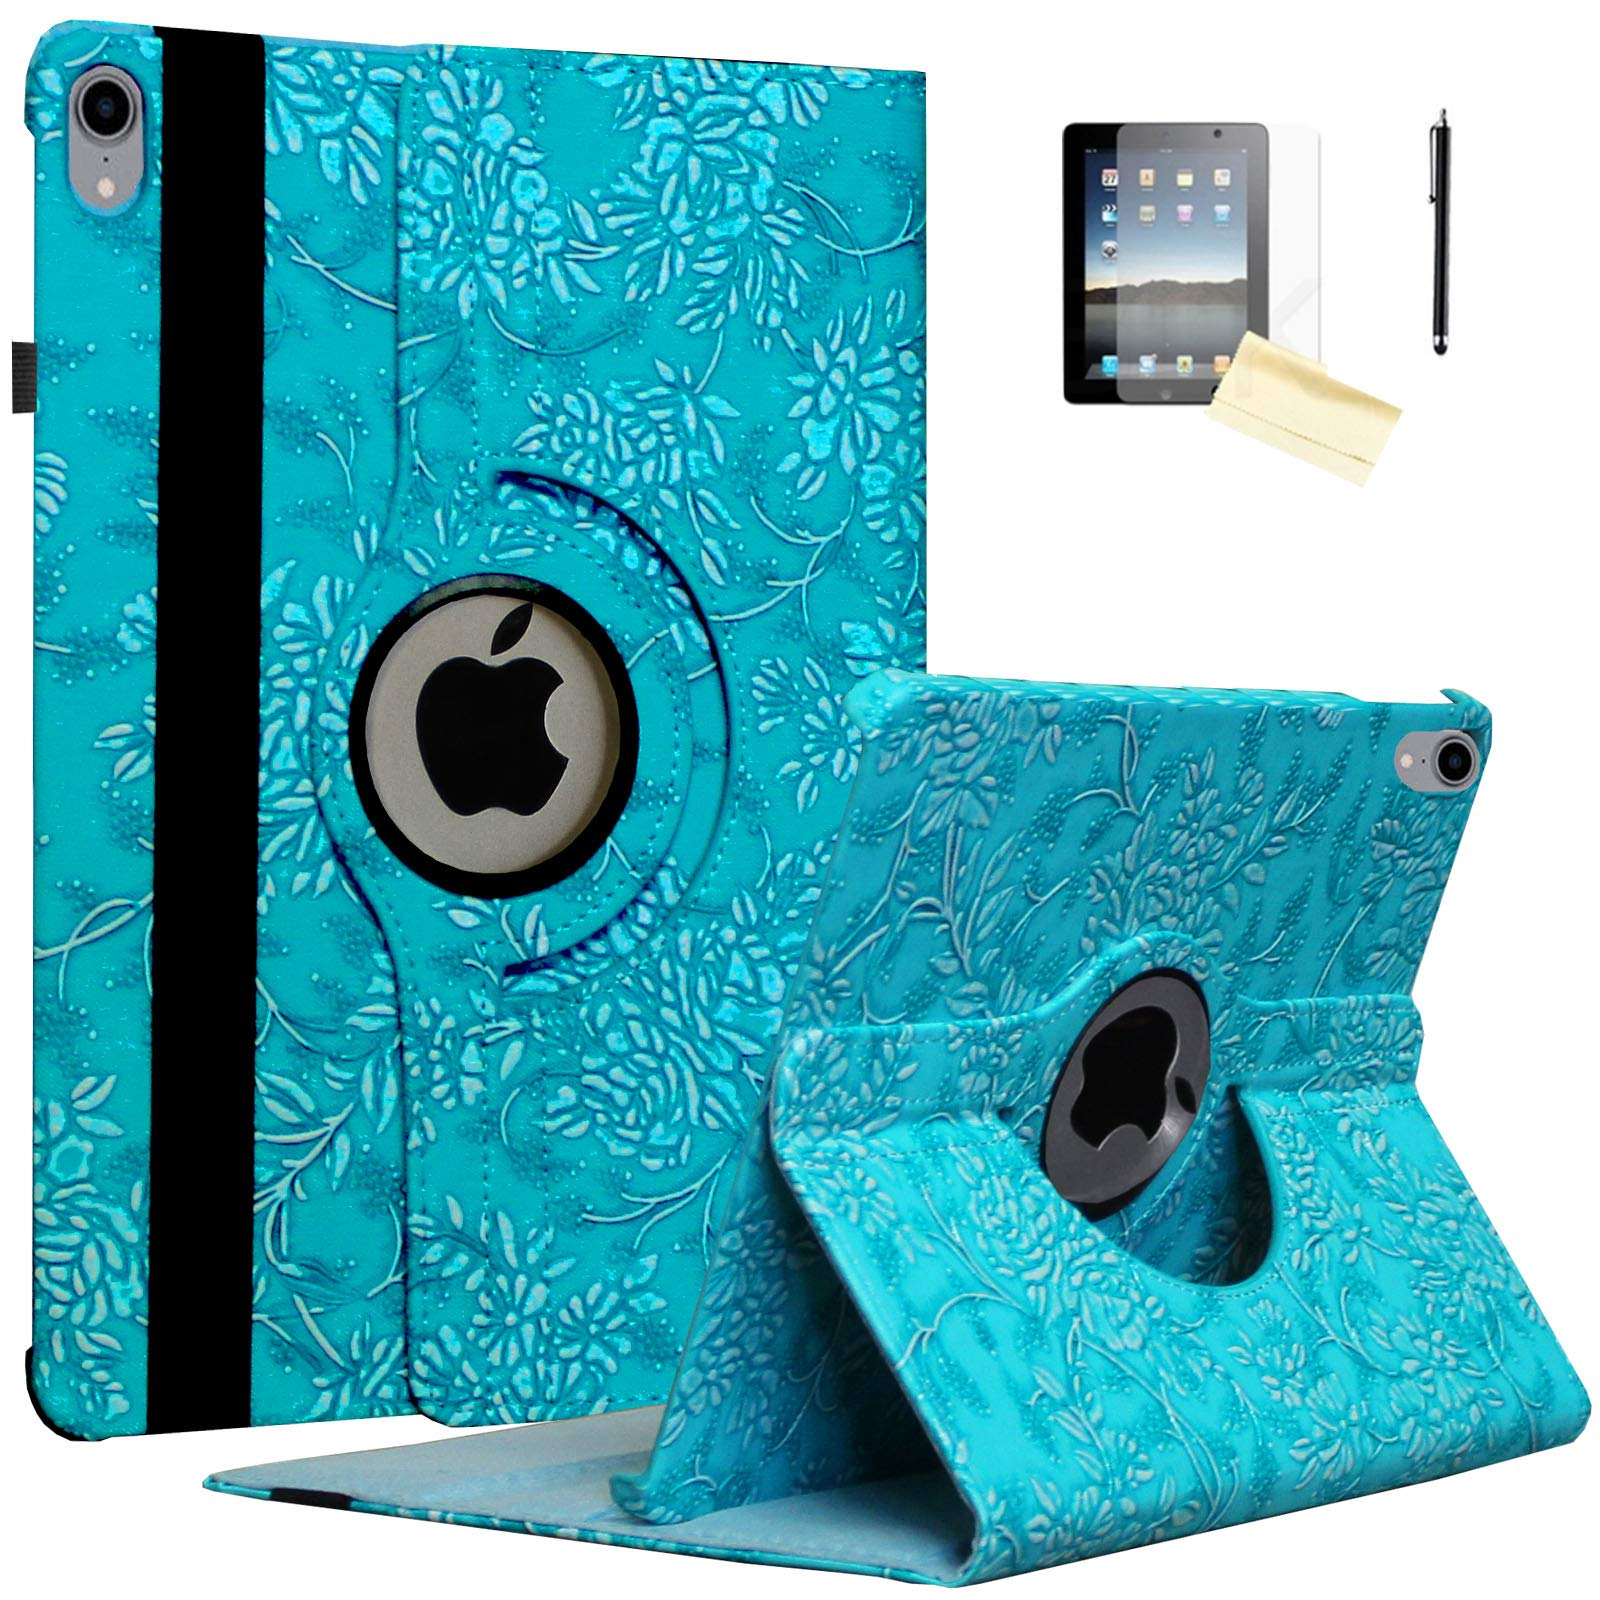 JYtrend Case for 10.5-inch iPad Air 3rd, Rotating Stand Smart Magnetic Auto Wake Up/Sleep Cover for 2019 iPad Air 3 -A2152 A2153 A2154 A2123 MUUT2LL/A MV162LL/A MV0E2B/A MV0U2CH(Embossed Blue Flower)